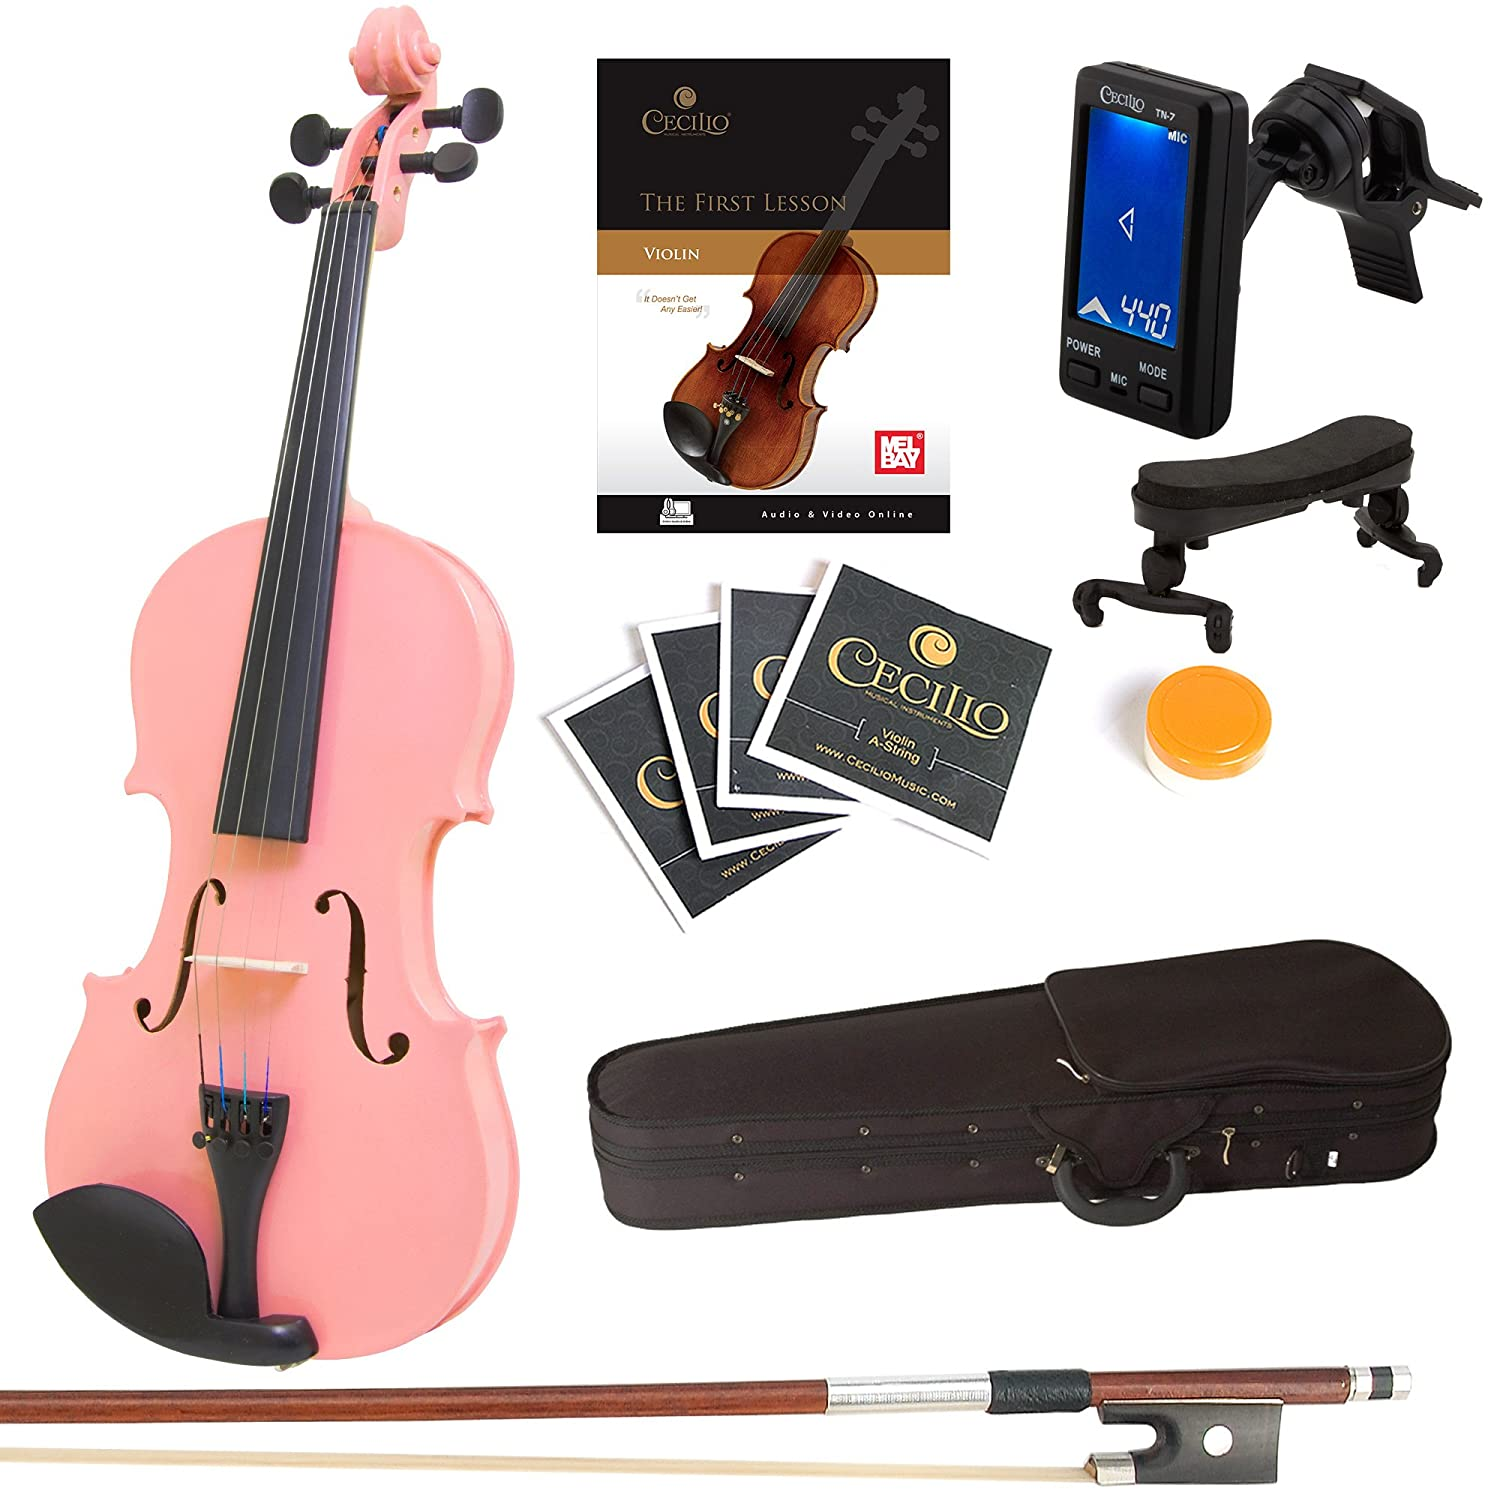 Mendini Full Size 4/4 MV-Purple Solid Wood Violin with Tuner, Lesson Book, Shoulder Rest, Extra Strings, Bow and Case, Metallic Purple Cecilio Musical Instruments 4/4MV-Purple+SR+TN7+FB1